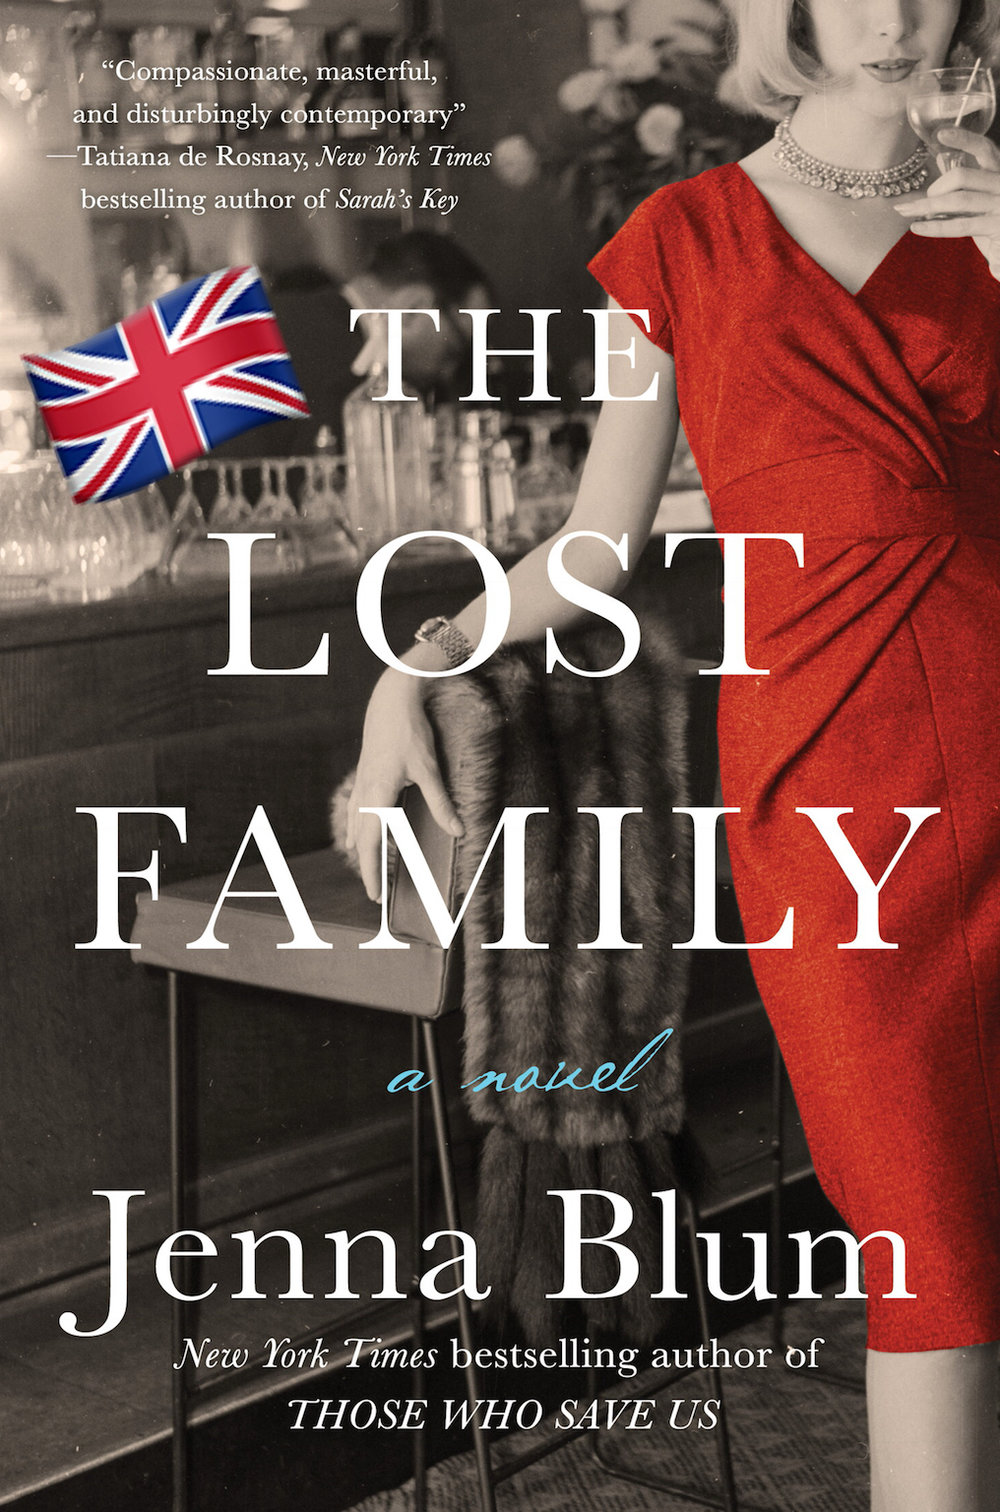 Introducing The Lost Family UK edition!🇬🇧 - We are thrilled to announce to our friends across the pond that The Lost Family is available NOW in the UK as an e-book from Blackfriars Books, an imprint of Little, Brown. Watch for the paperback coming in Fall 2018–meanwhile, happy e-reading! CinCIn! To purchase and download, please click here.